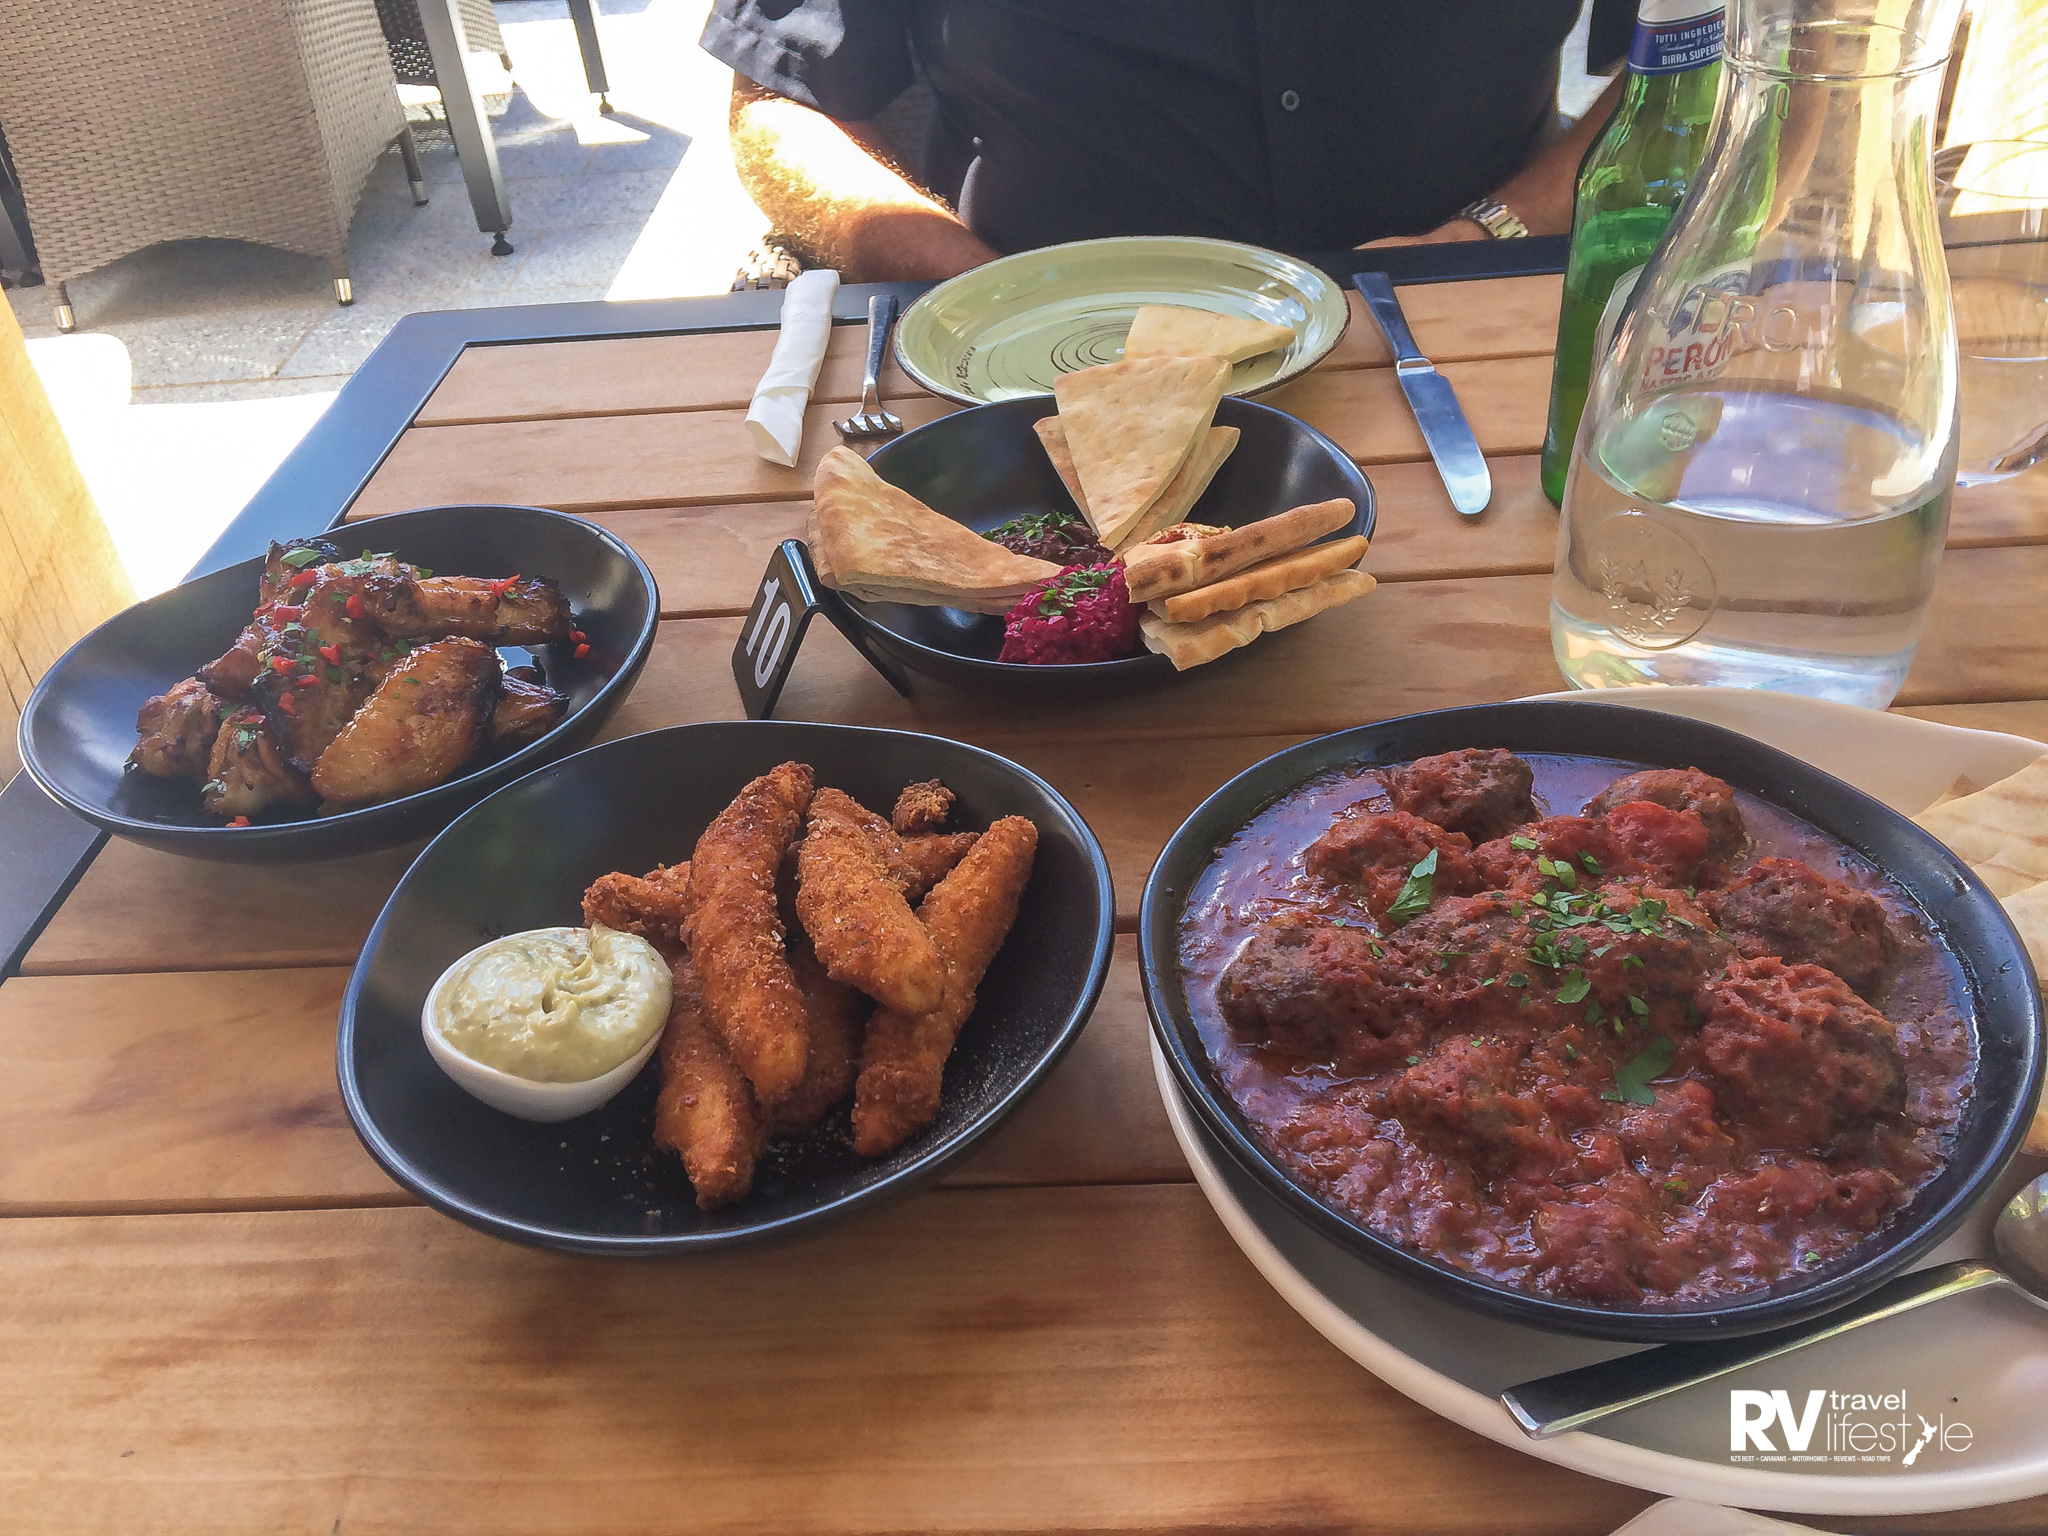 A local Martinborough restaurant has opened, Lunar Vineyard, wow the food is really good. These tapas plates are only $16 each, and we ended up with too much food for us to eat - that makes a change!